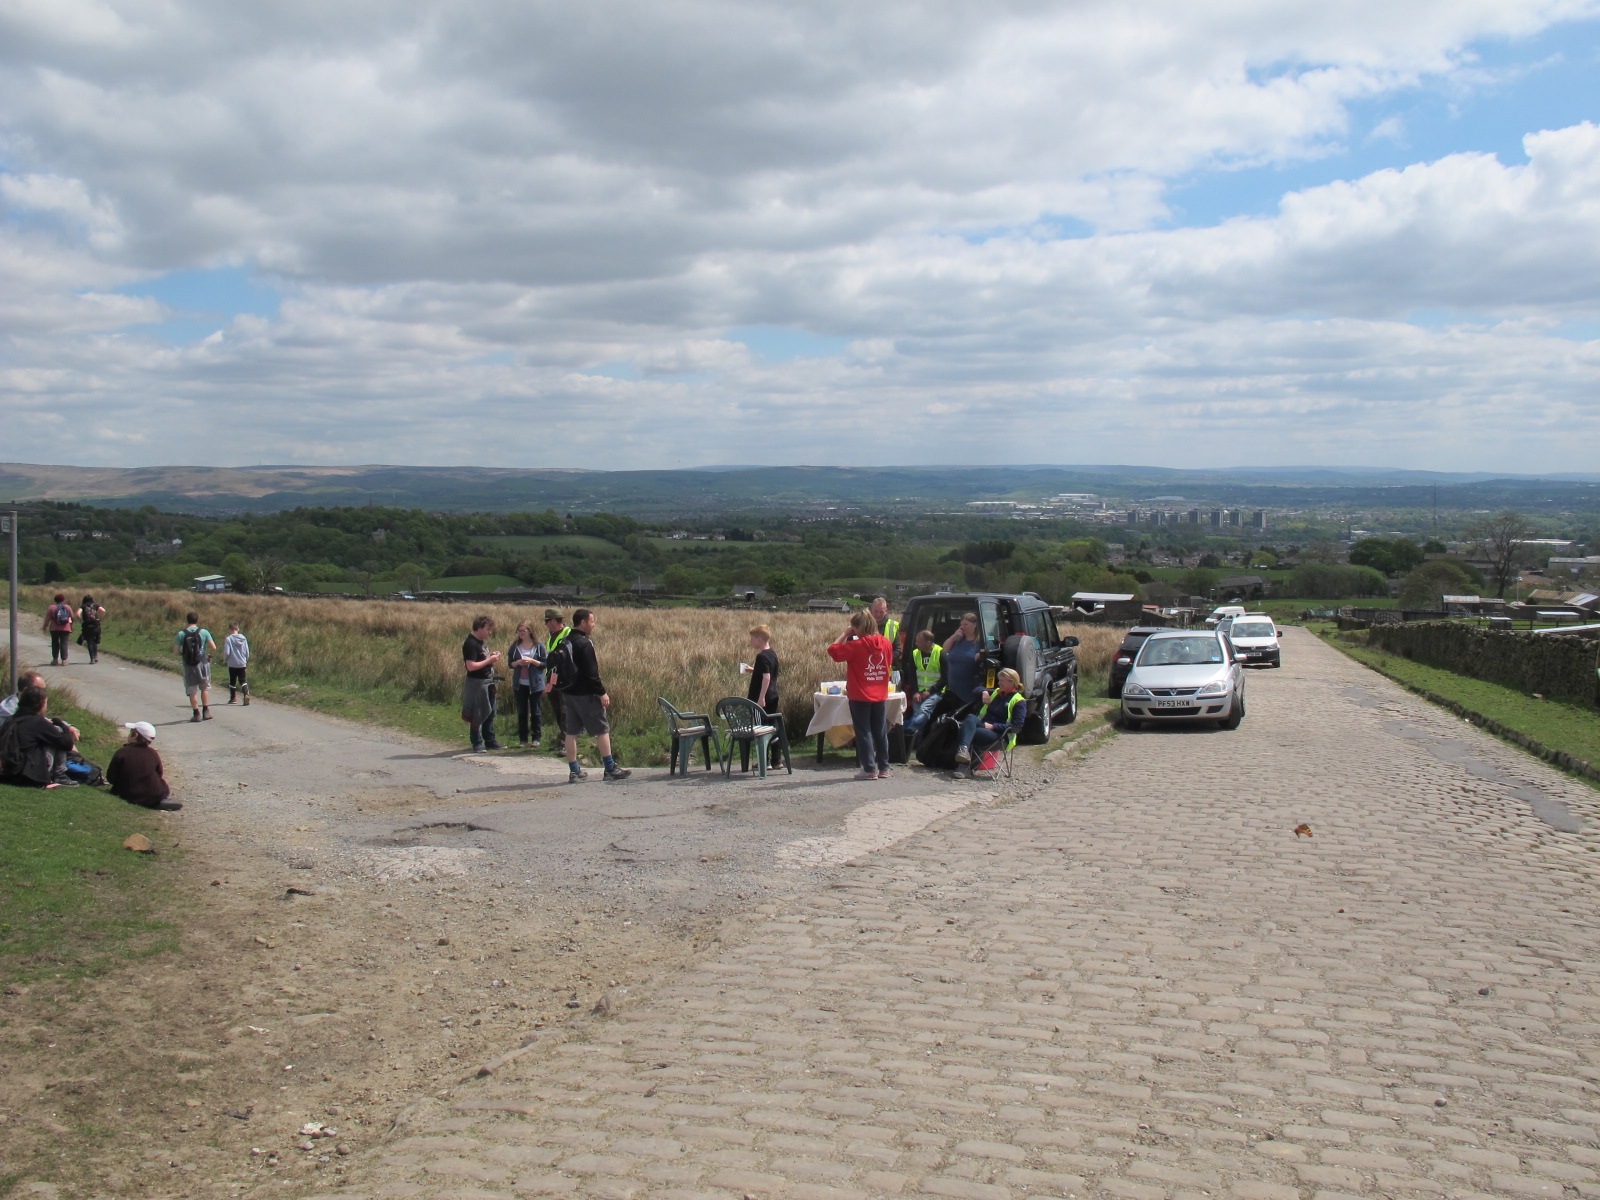 Rooley Moor Road - Checkpoint 4 #4